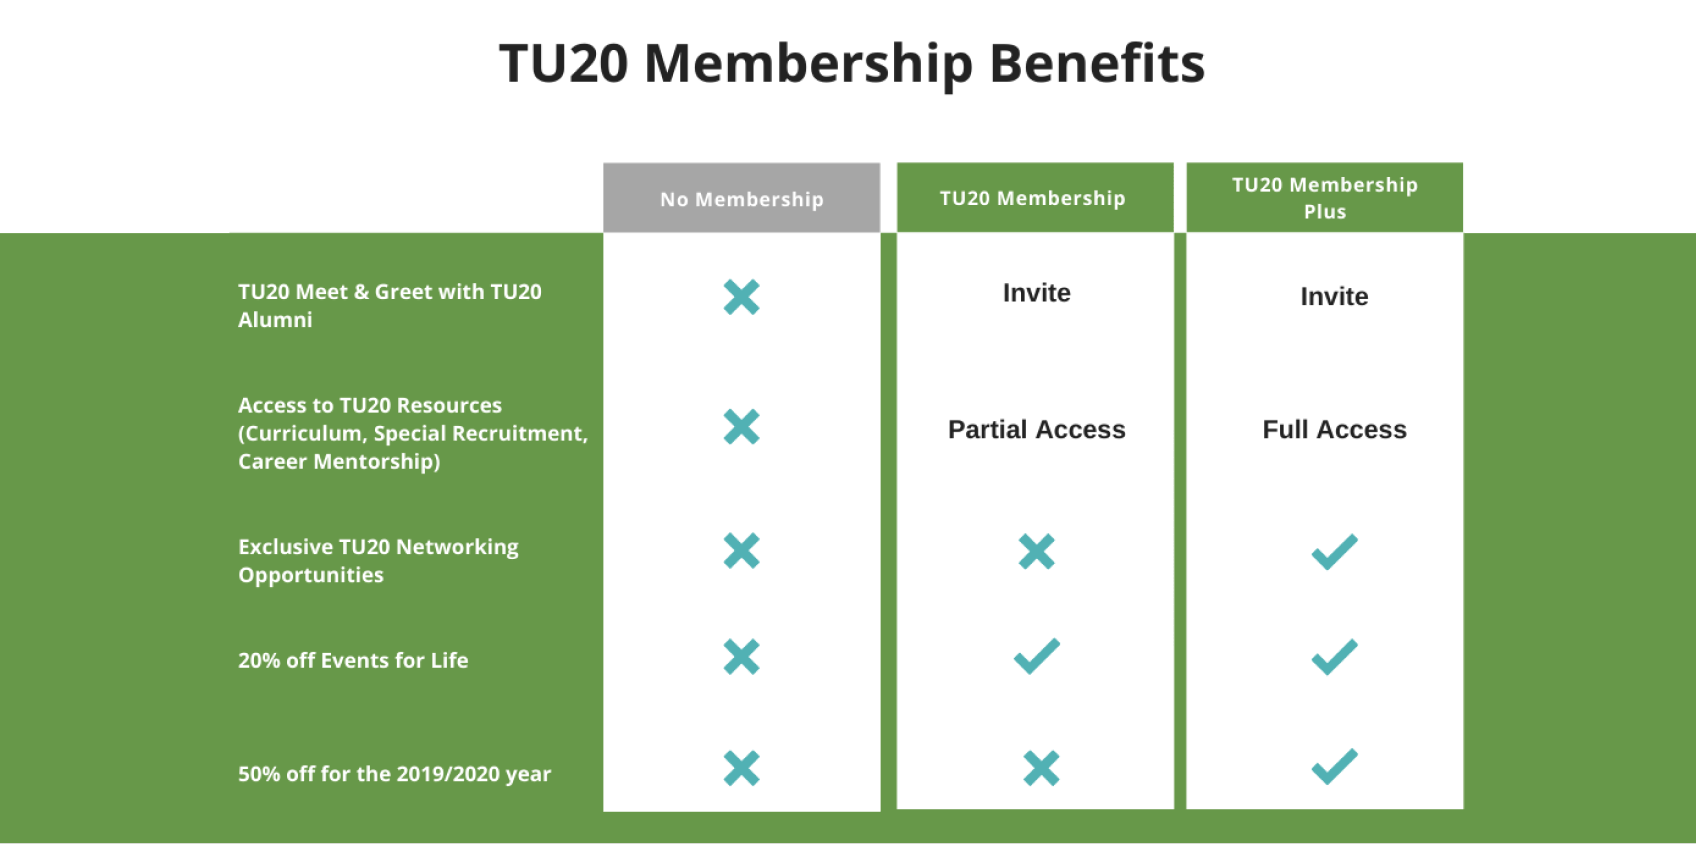 TU20 Membership Benefits